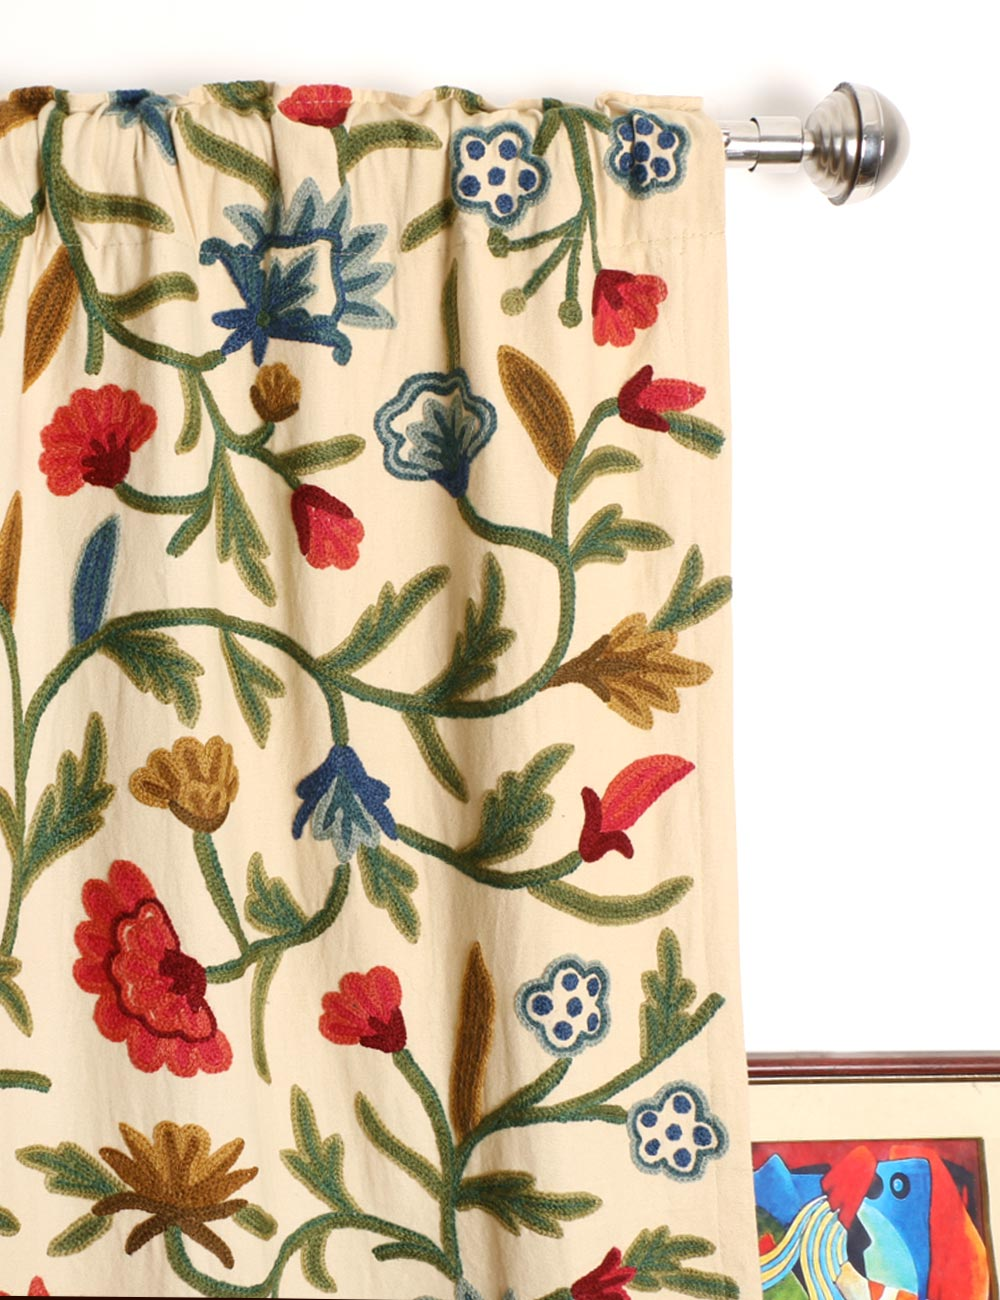 Wular crewel curtain panels and drapes hand embroidered